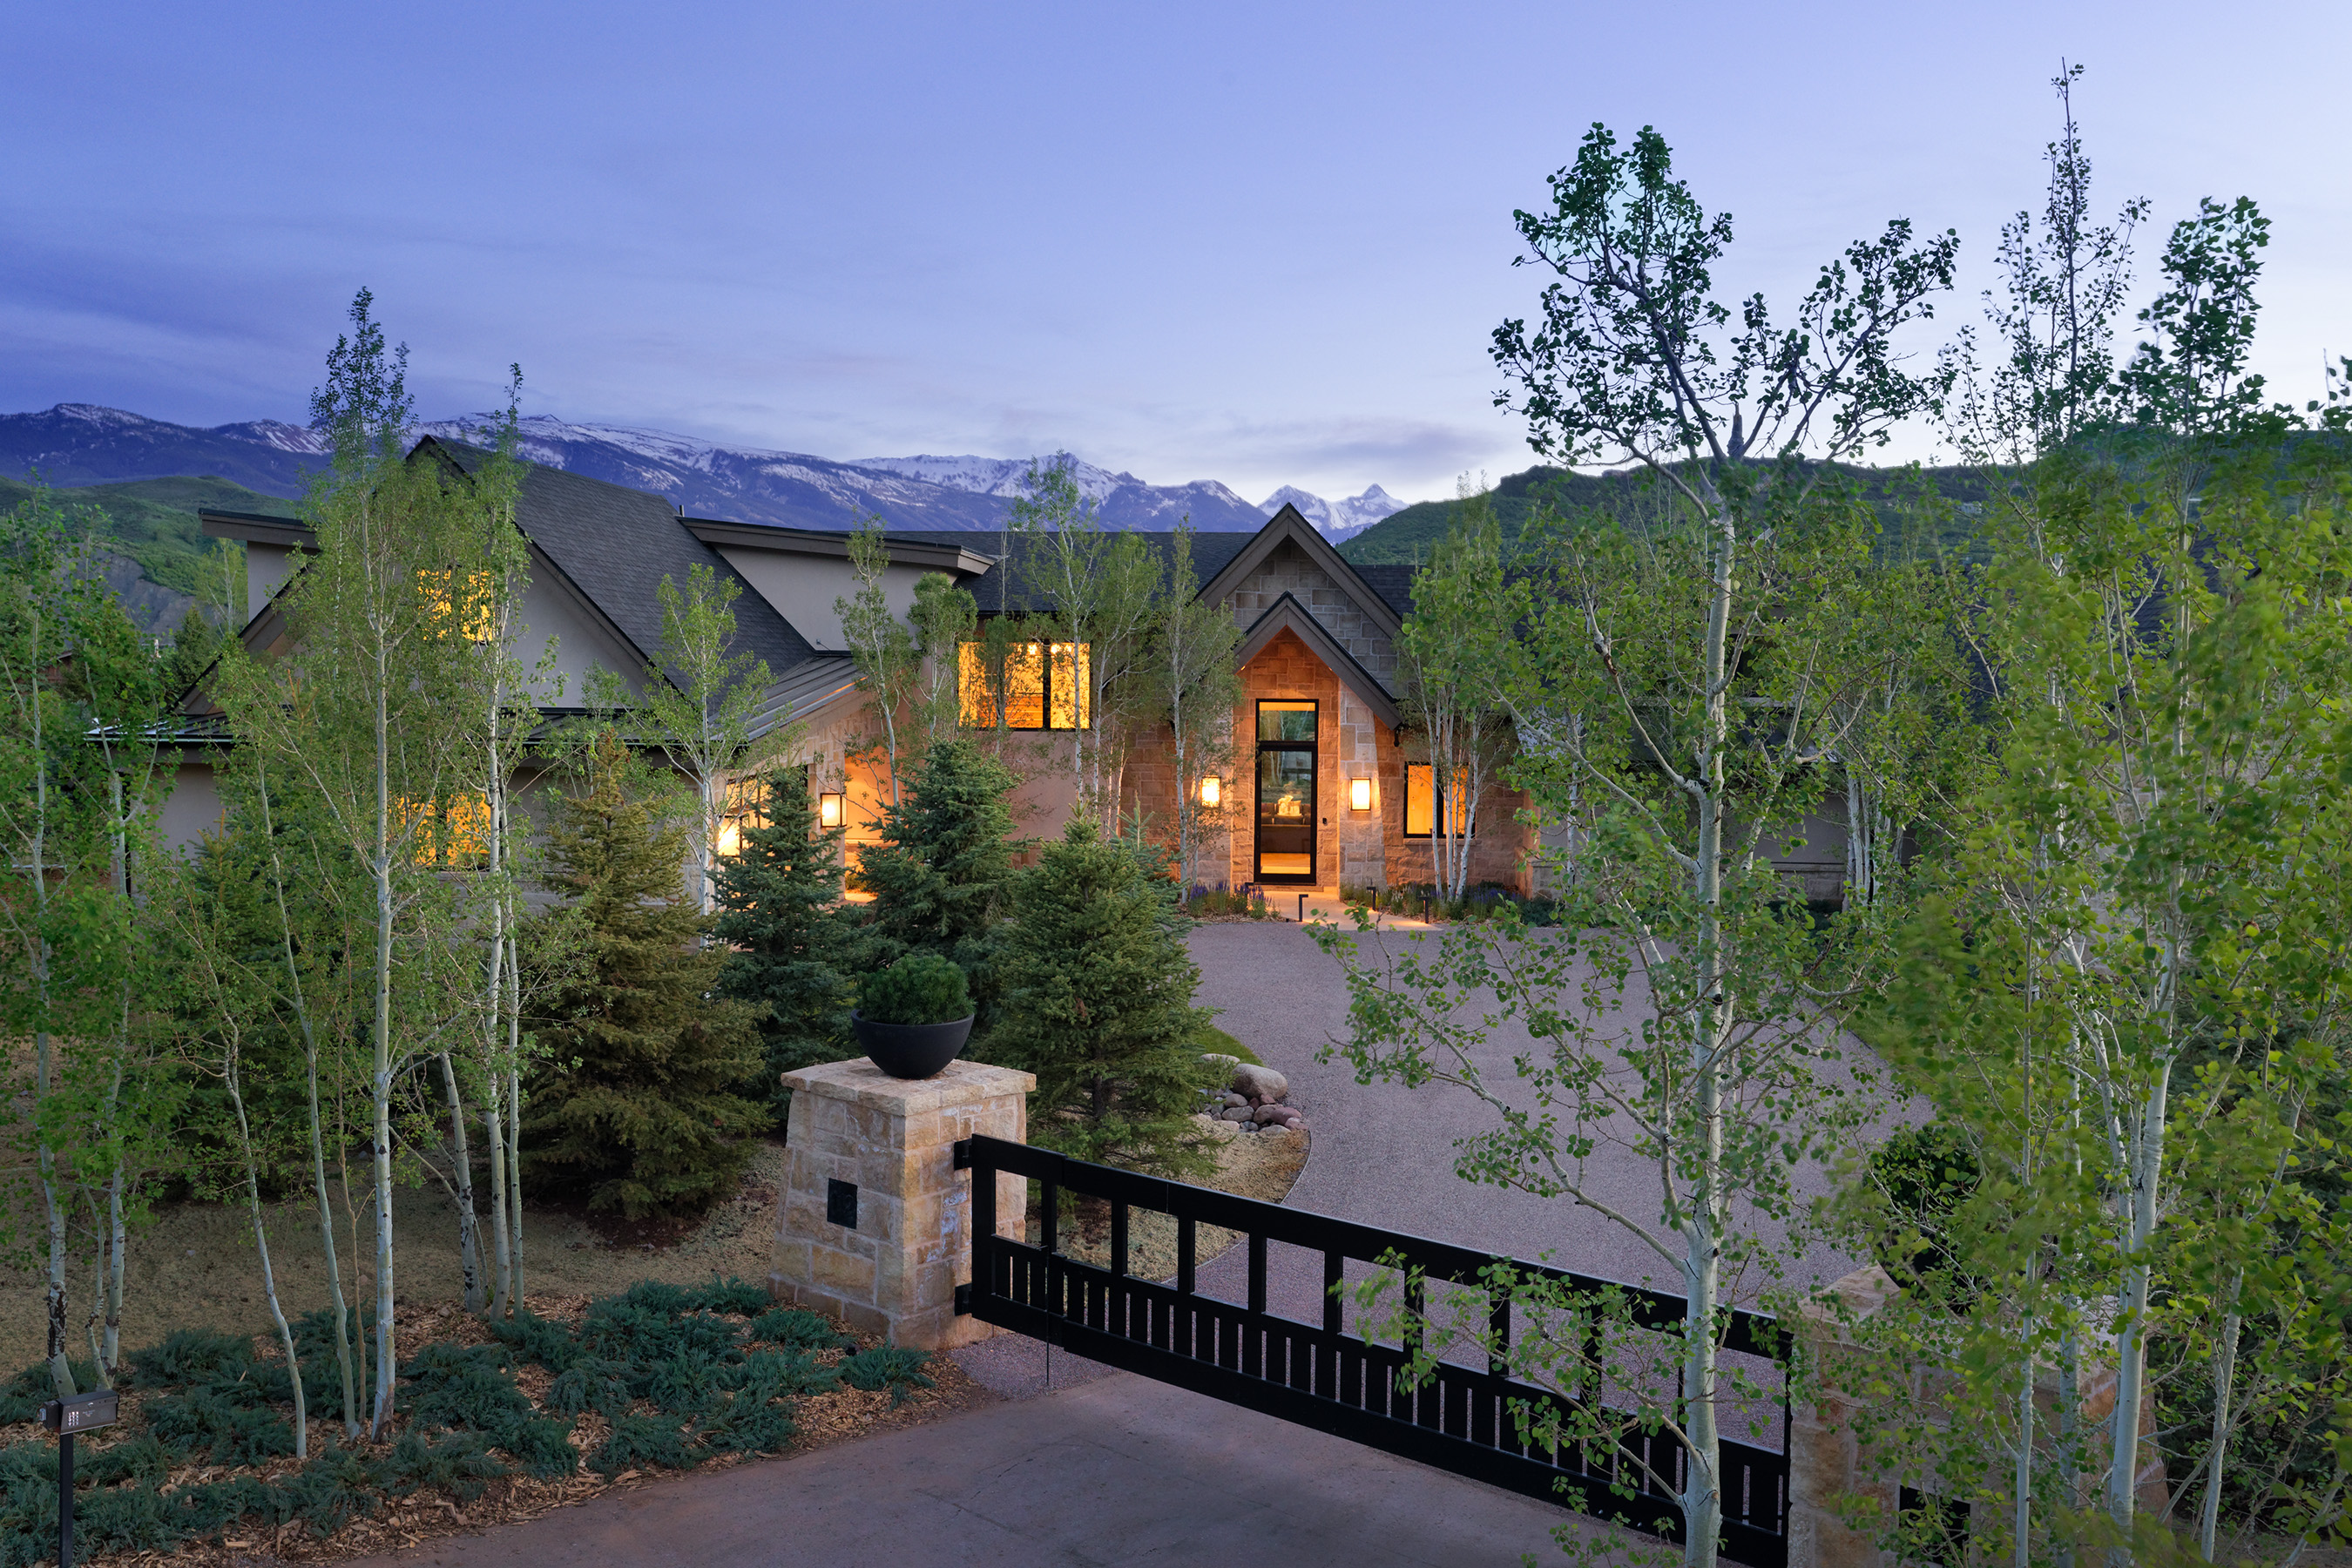 Maison unifamiliale pour l Vente à The Best of the West 112 Byers Court McLain Flats, Aspen, Colorado, 81611 États-Unis